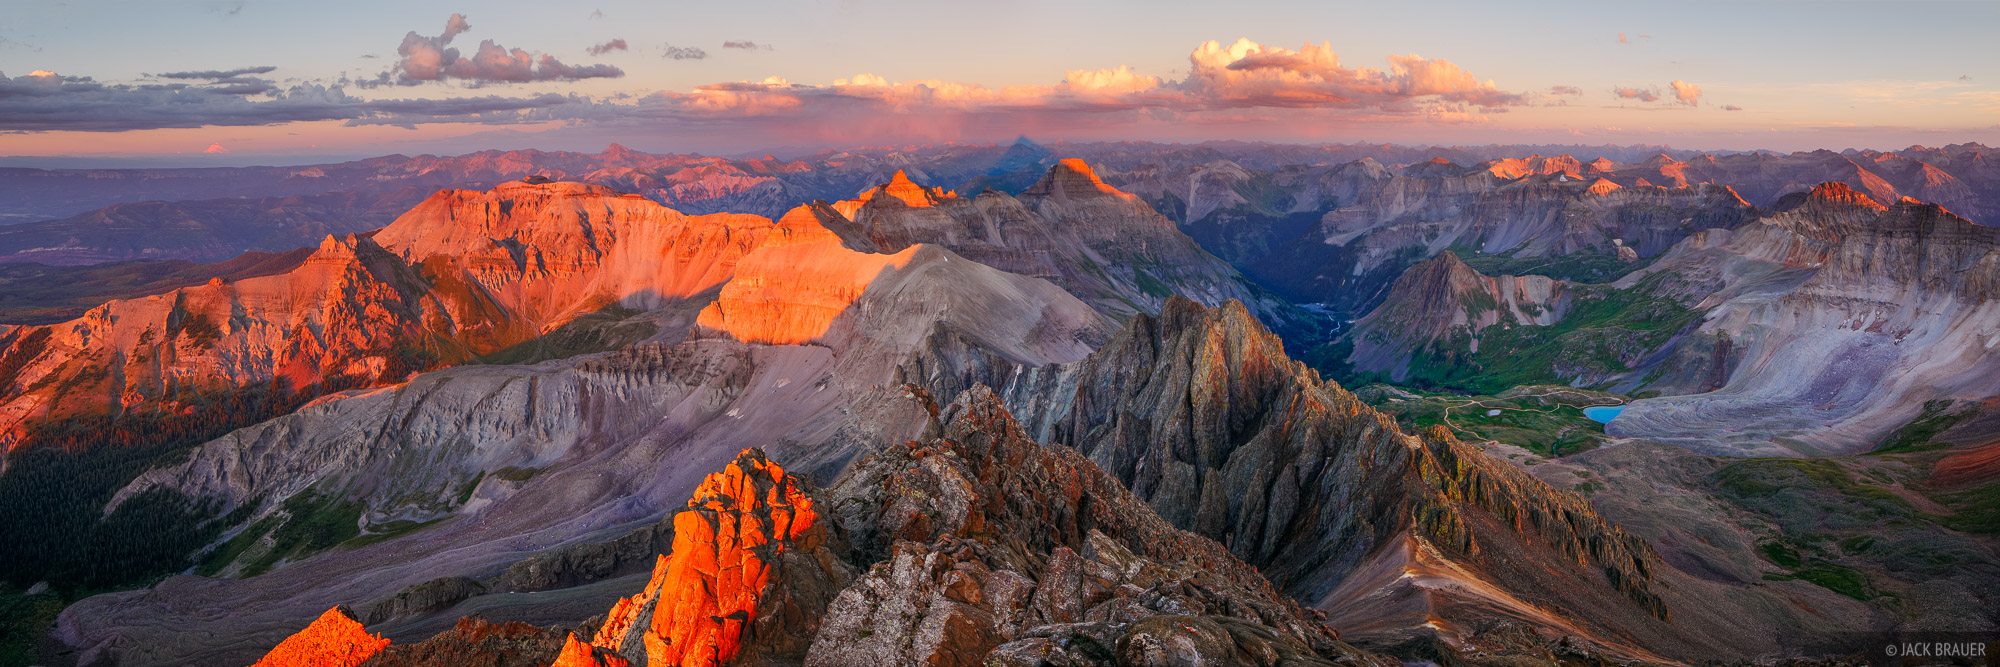 Mt. Sneffels, summit, panorama, alpenglow, San Juan Mountains, Colorado, Yankee Boy Basin, photo